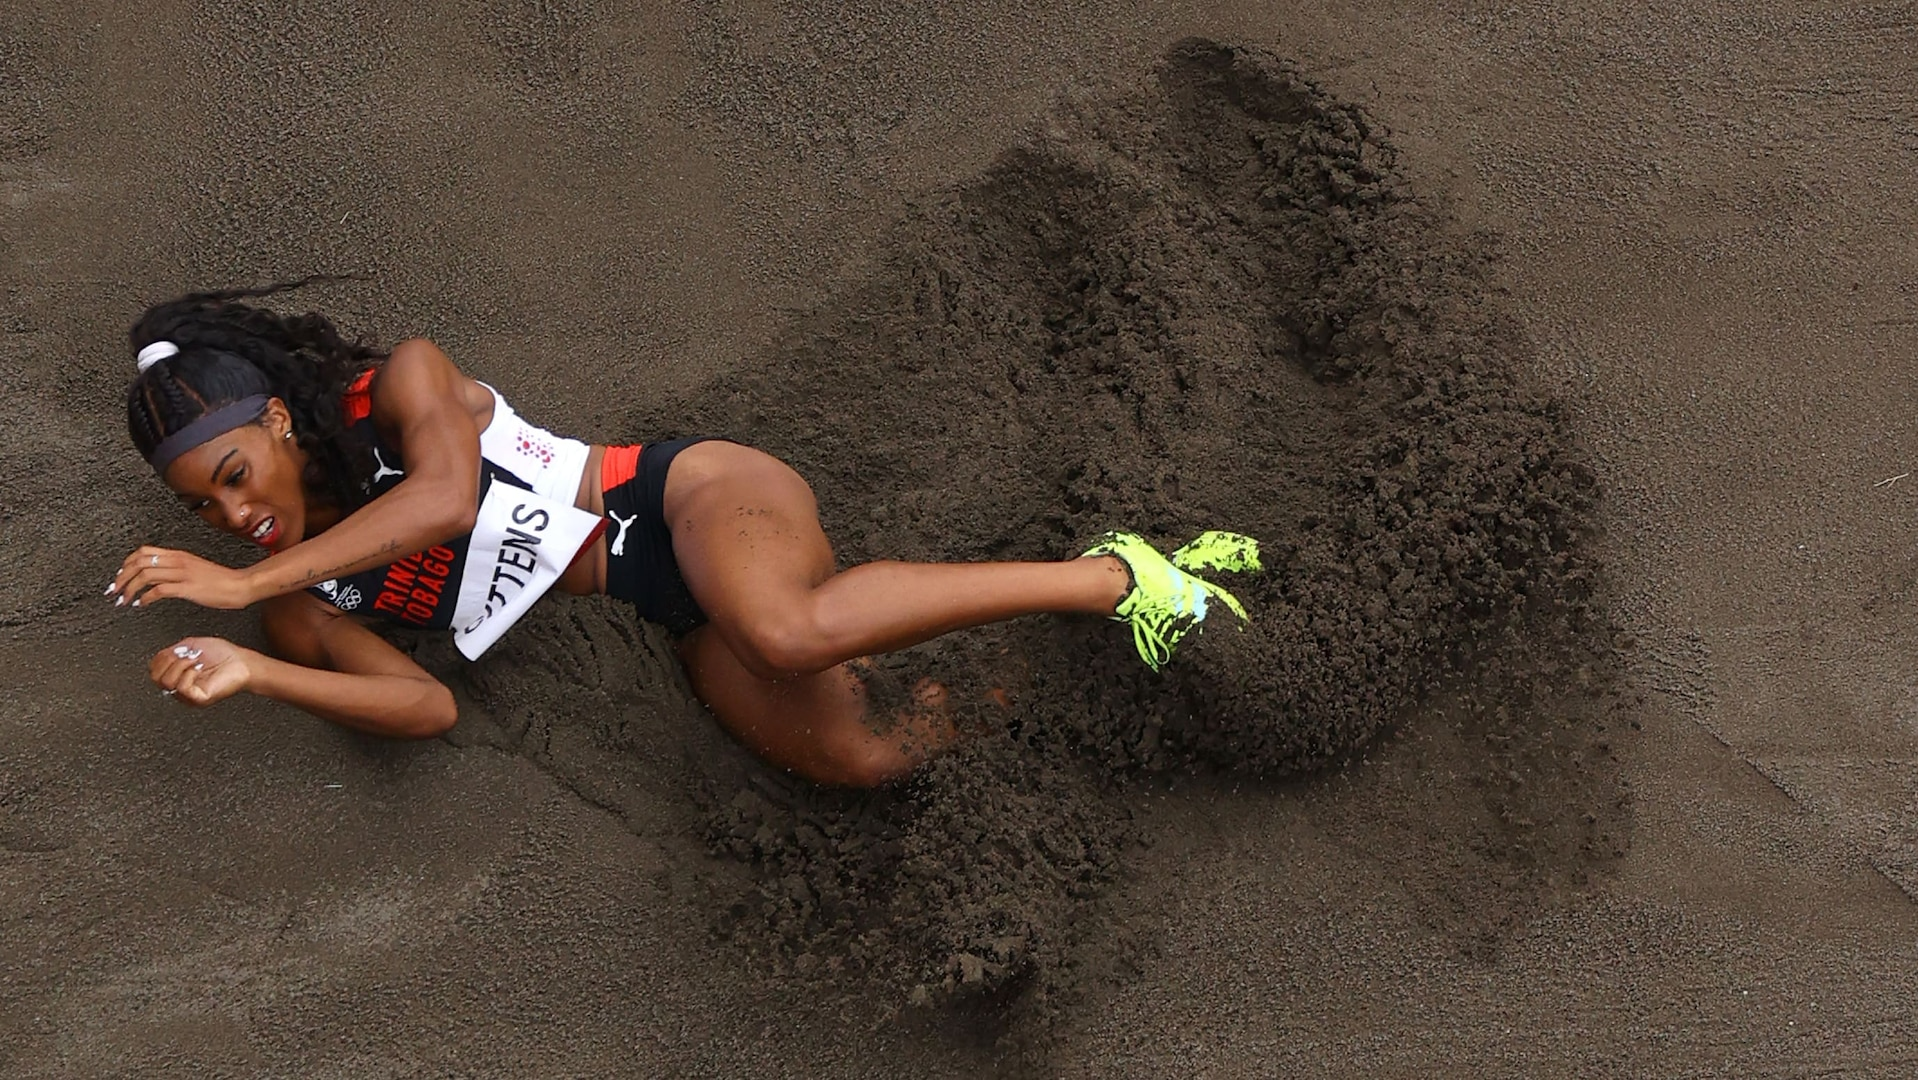 Tyra Gittens competes in the Women's Long Jump final on day eleven